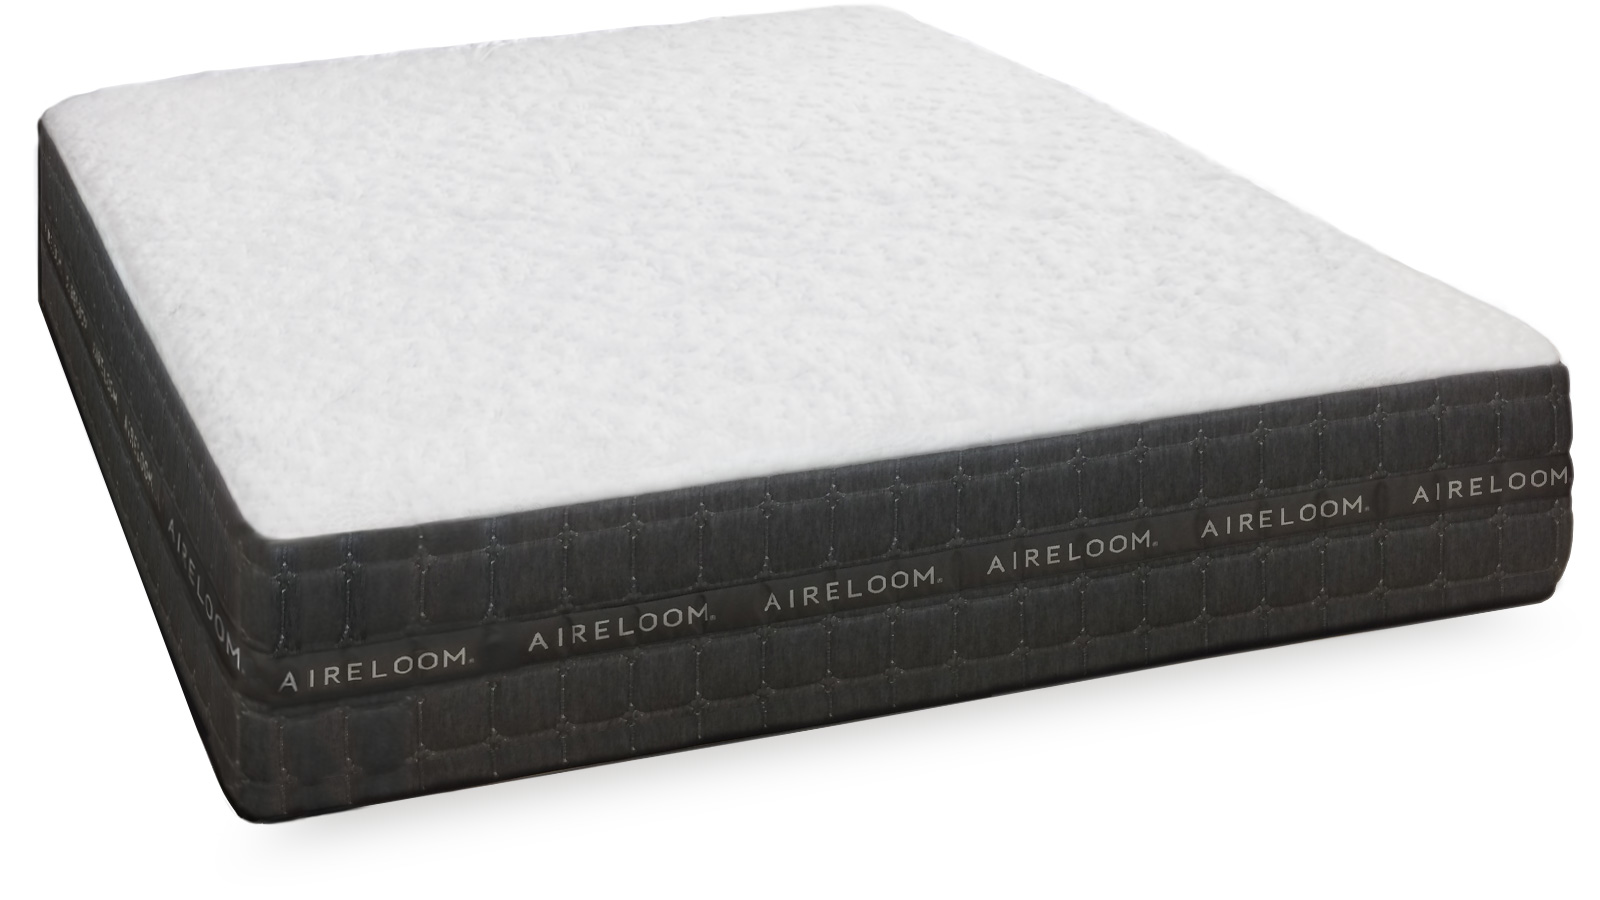 Aireloom Aspire Plush Luxury Mattress